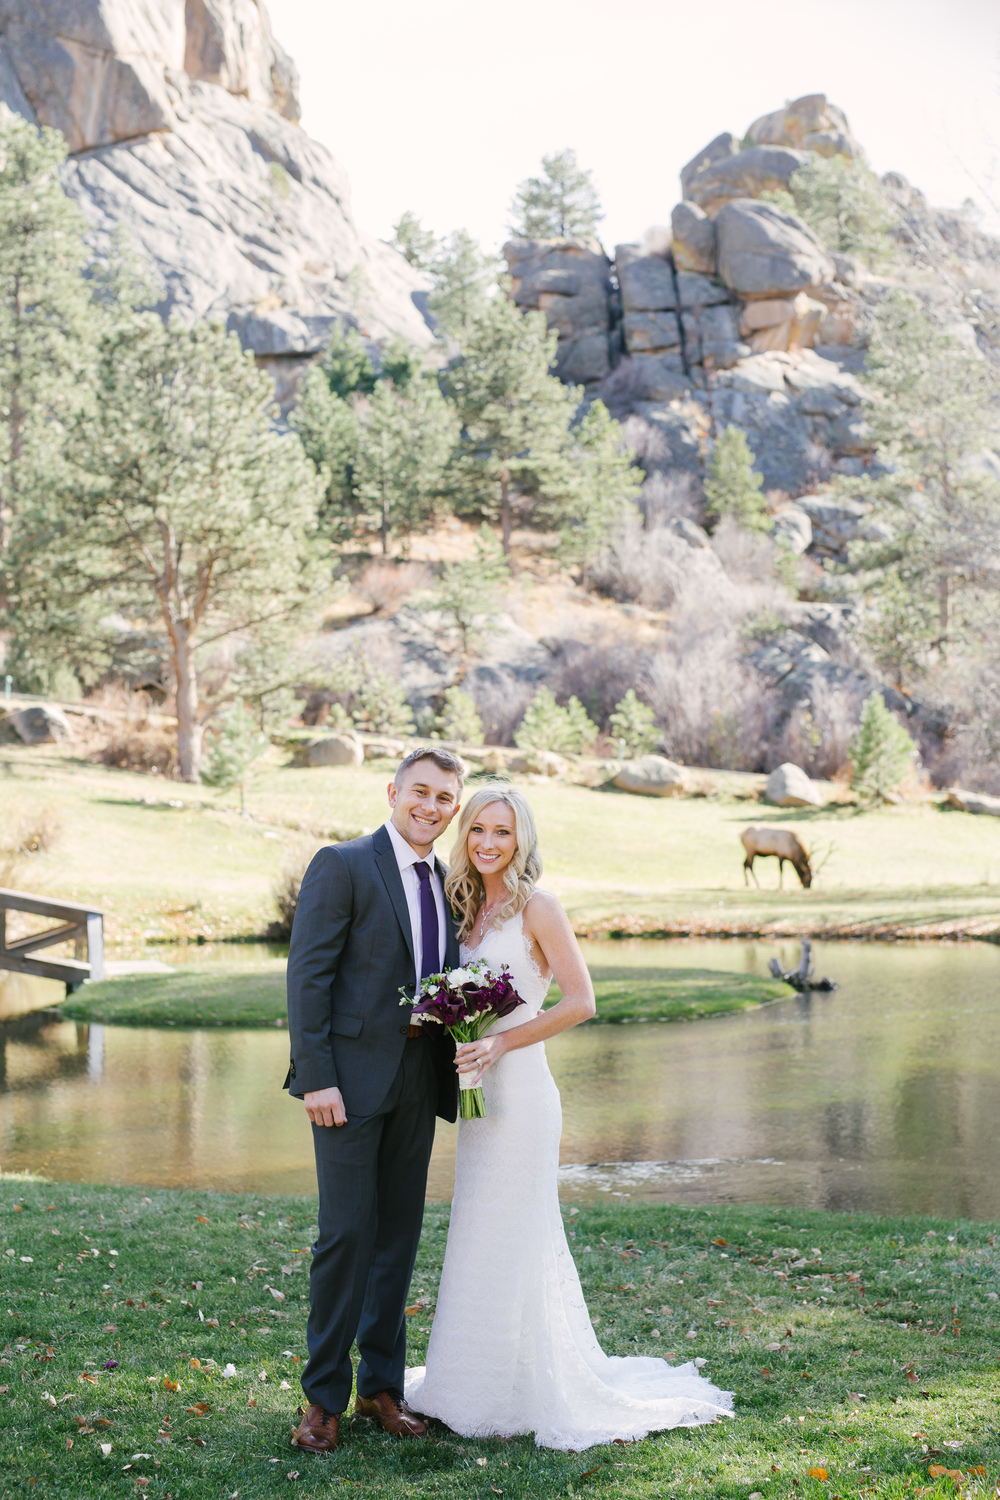 Kristy | October 24, 2015 | Estes Park, Colorado |  Megan Newton Photography